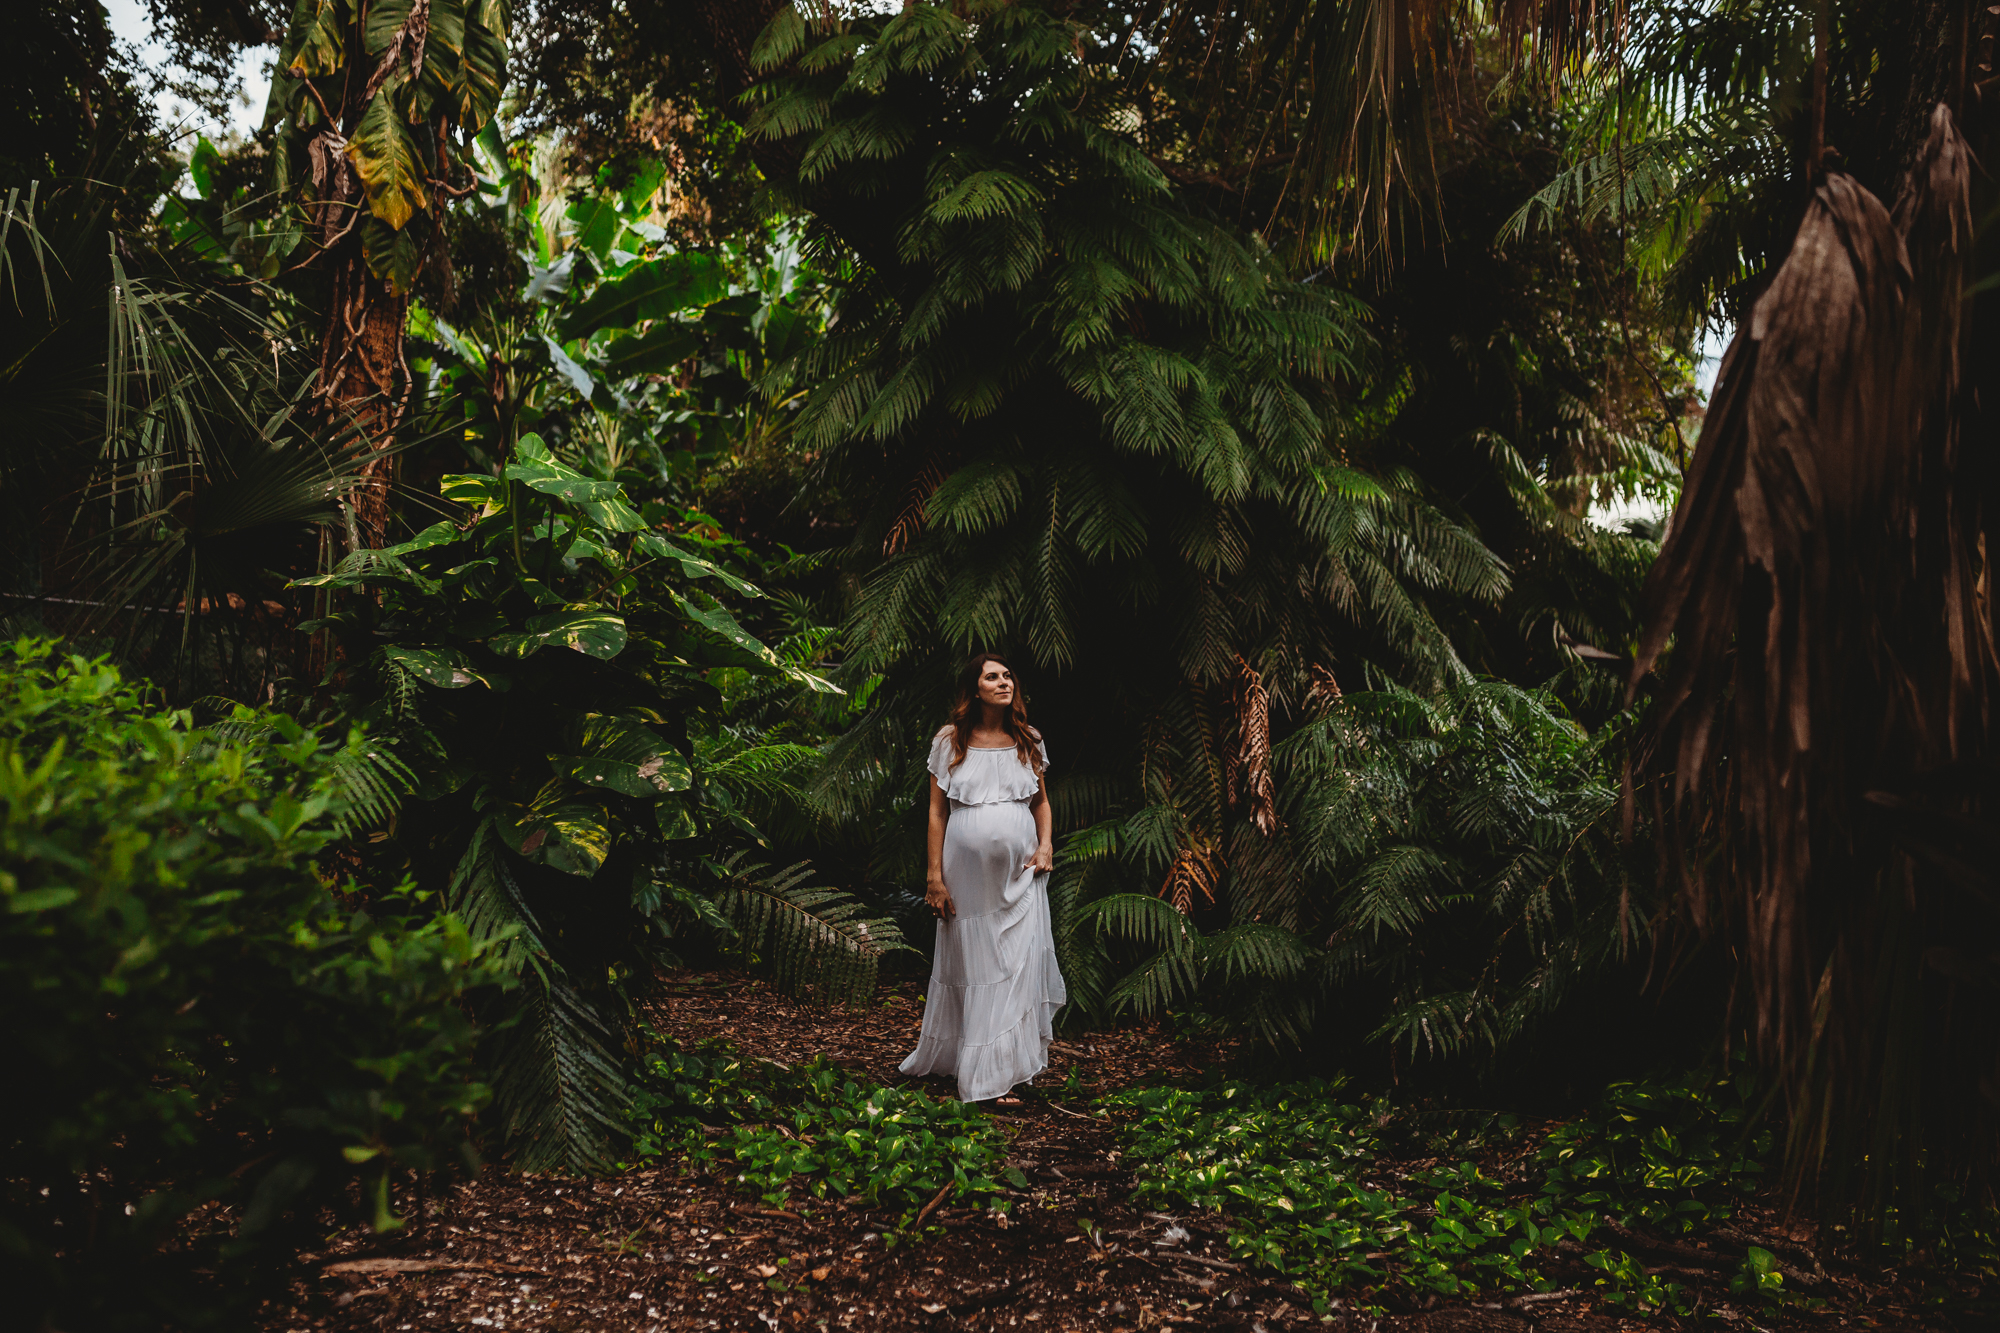 Bohemian Maternity Photo Session, Pinellas County FL